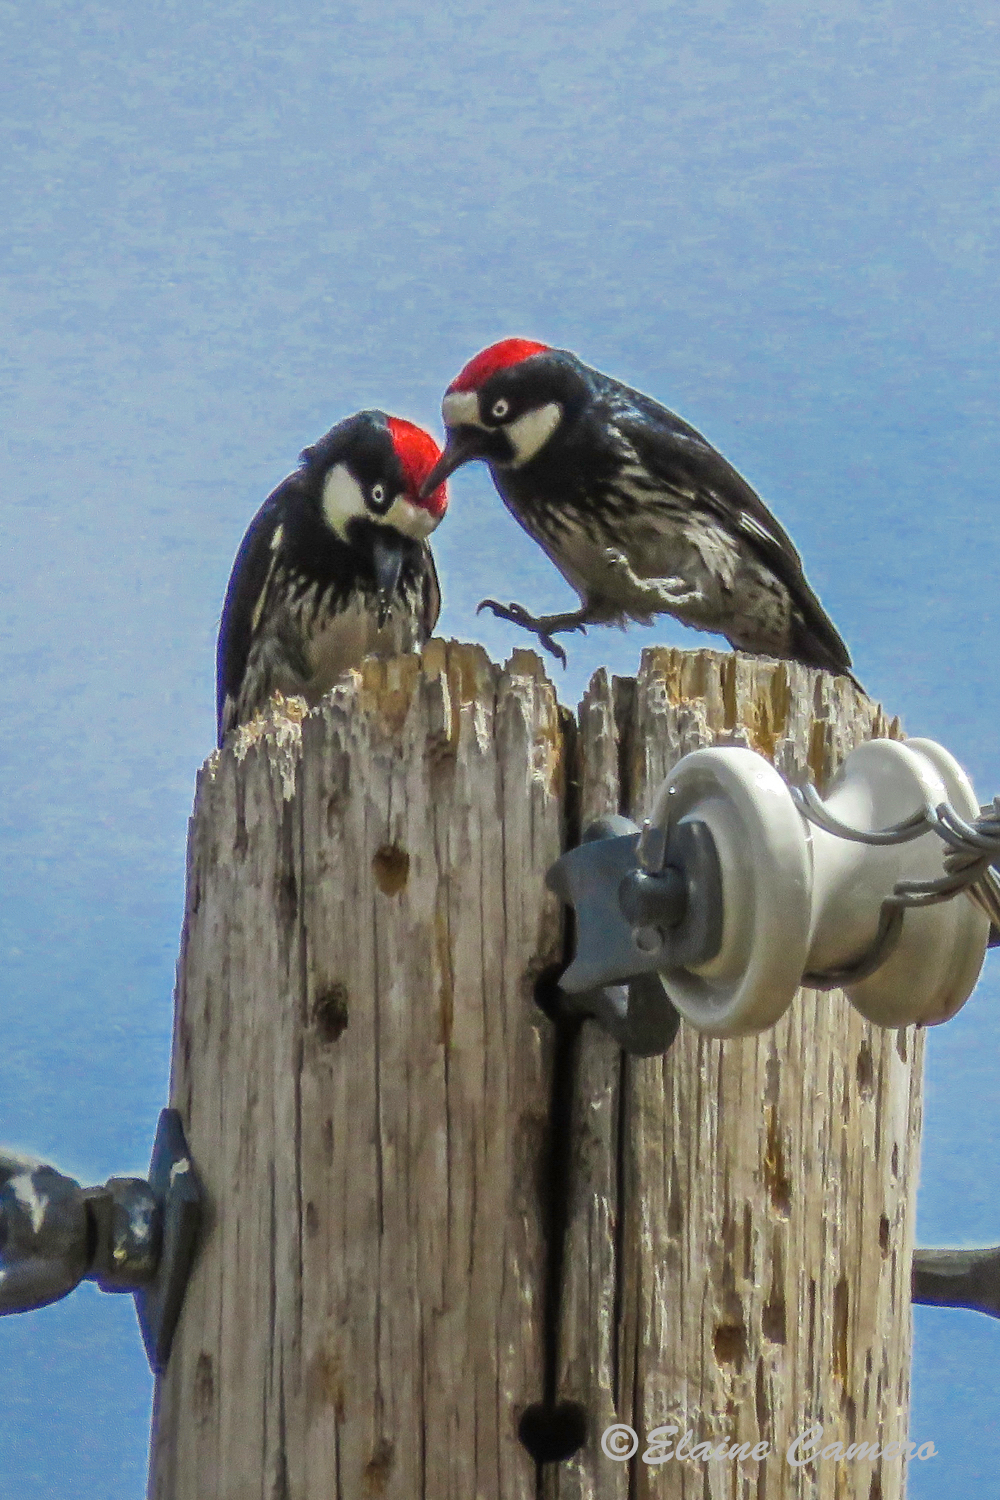 Two Acorn Woodpeckers.